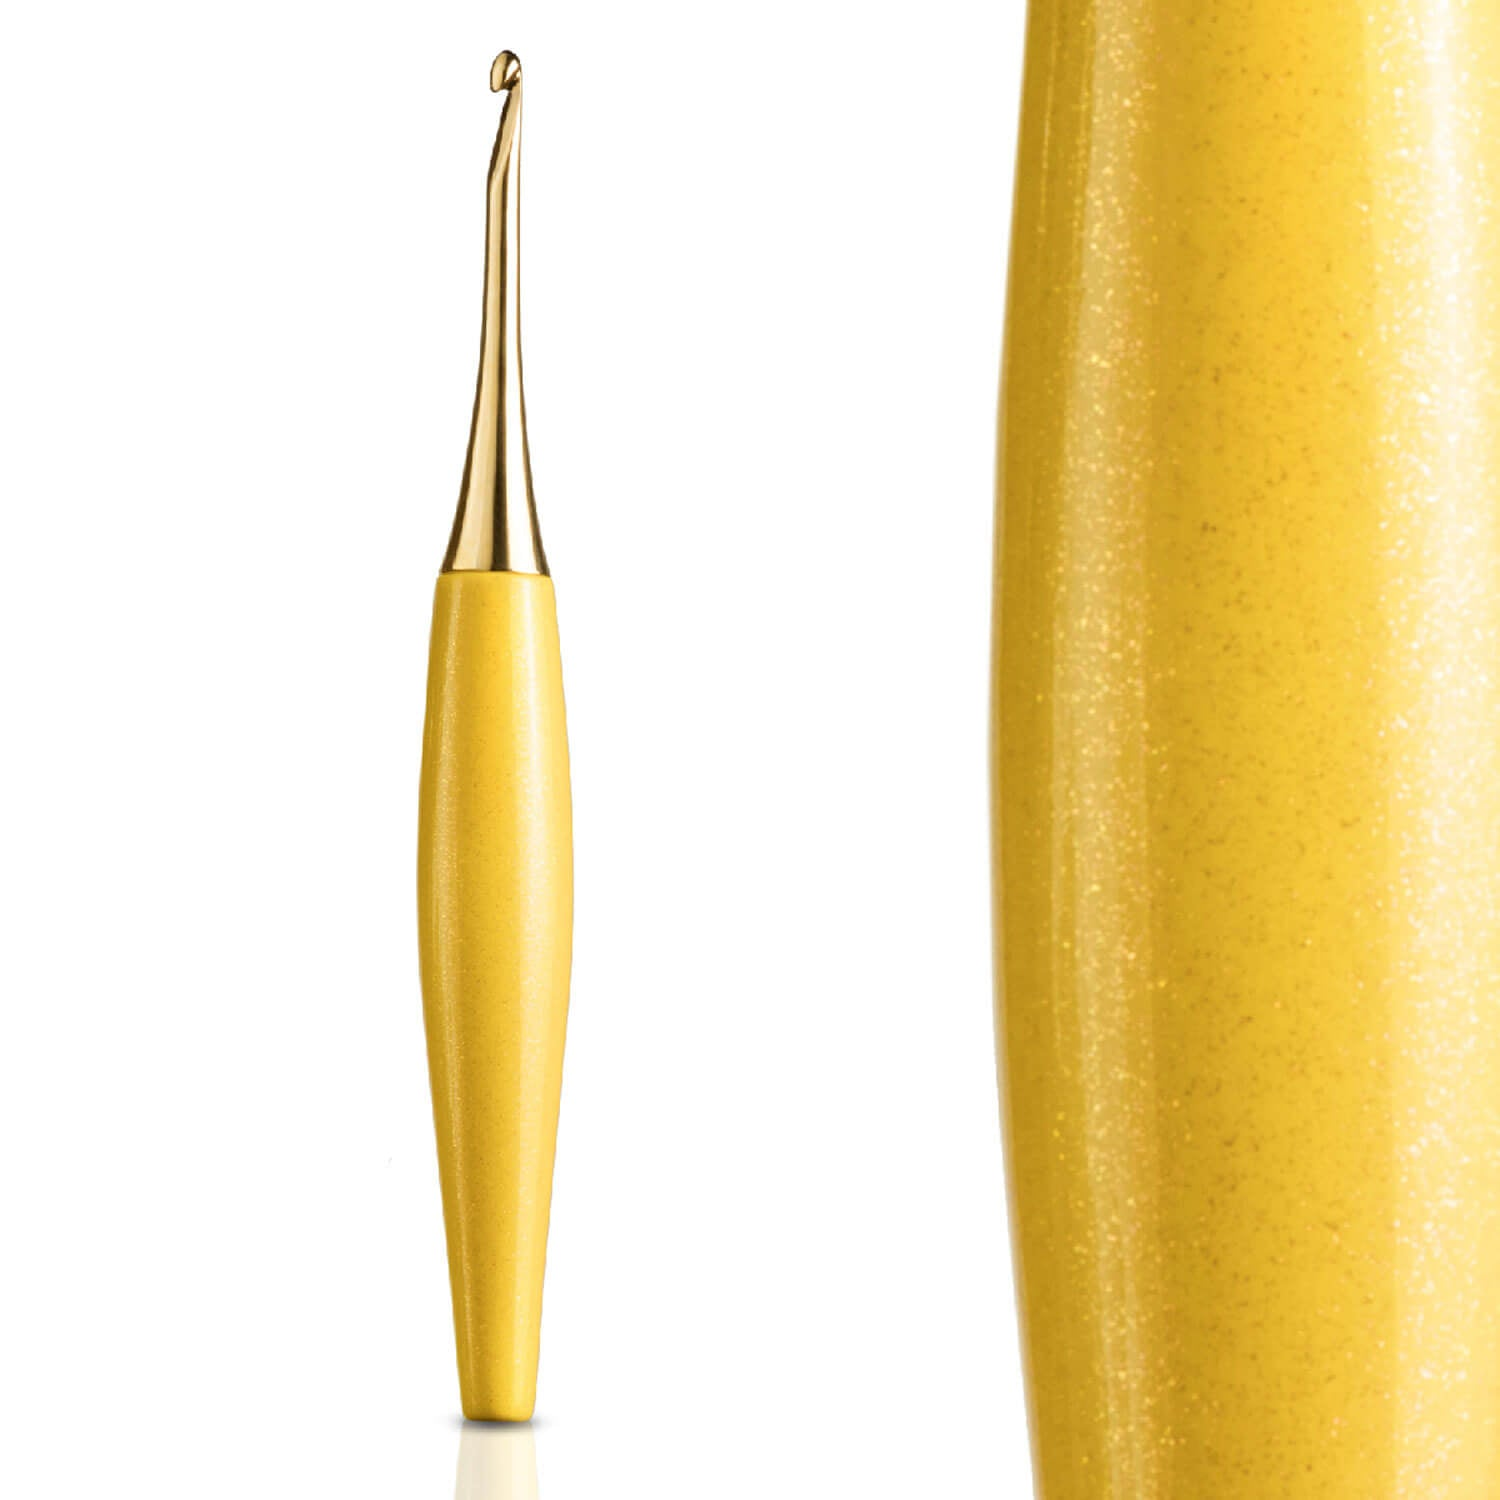 Furls Odyssey Crochet Hook - Yellow / Gold - Various Sizes | Yarn Worx